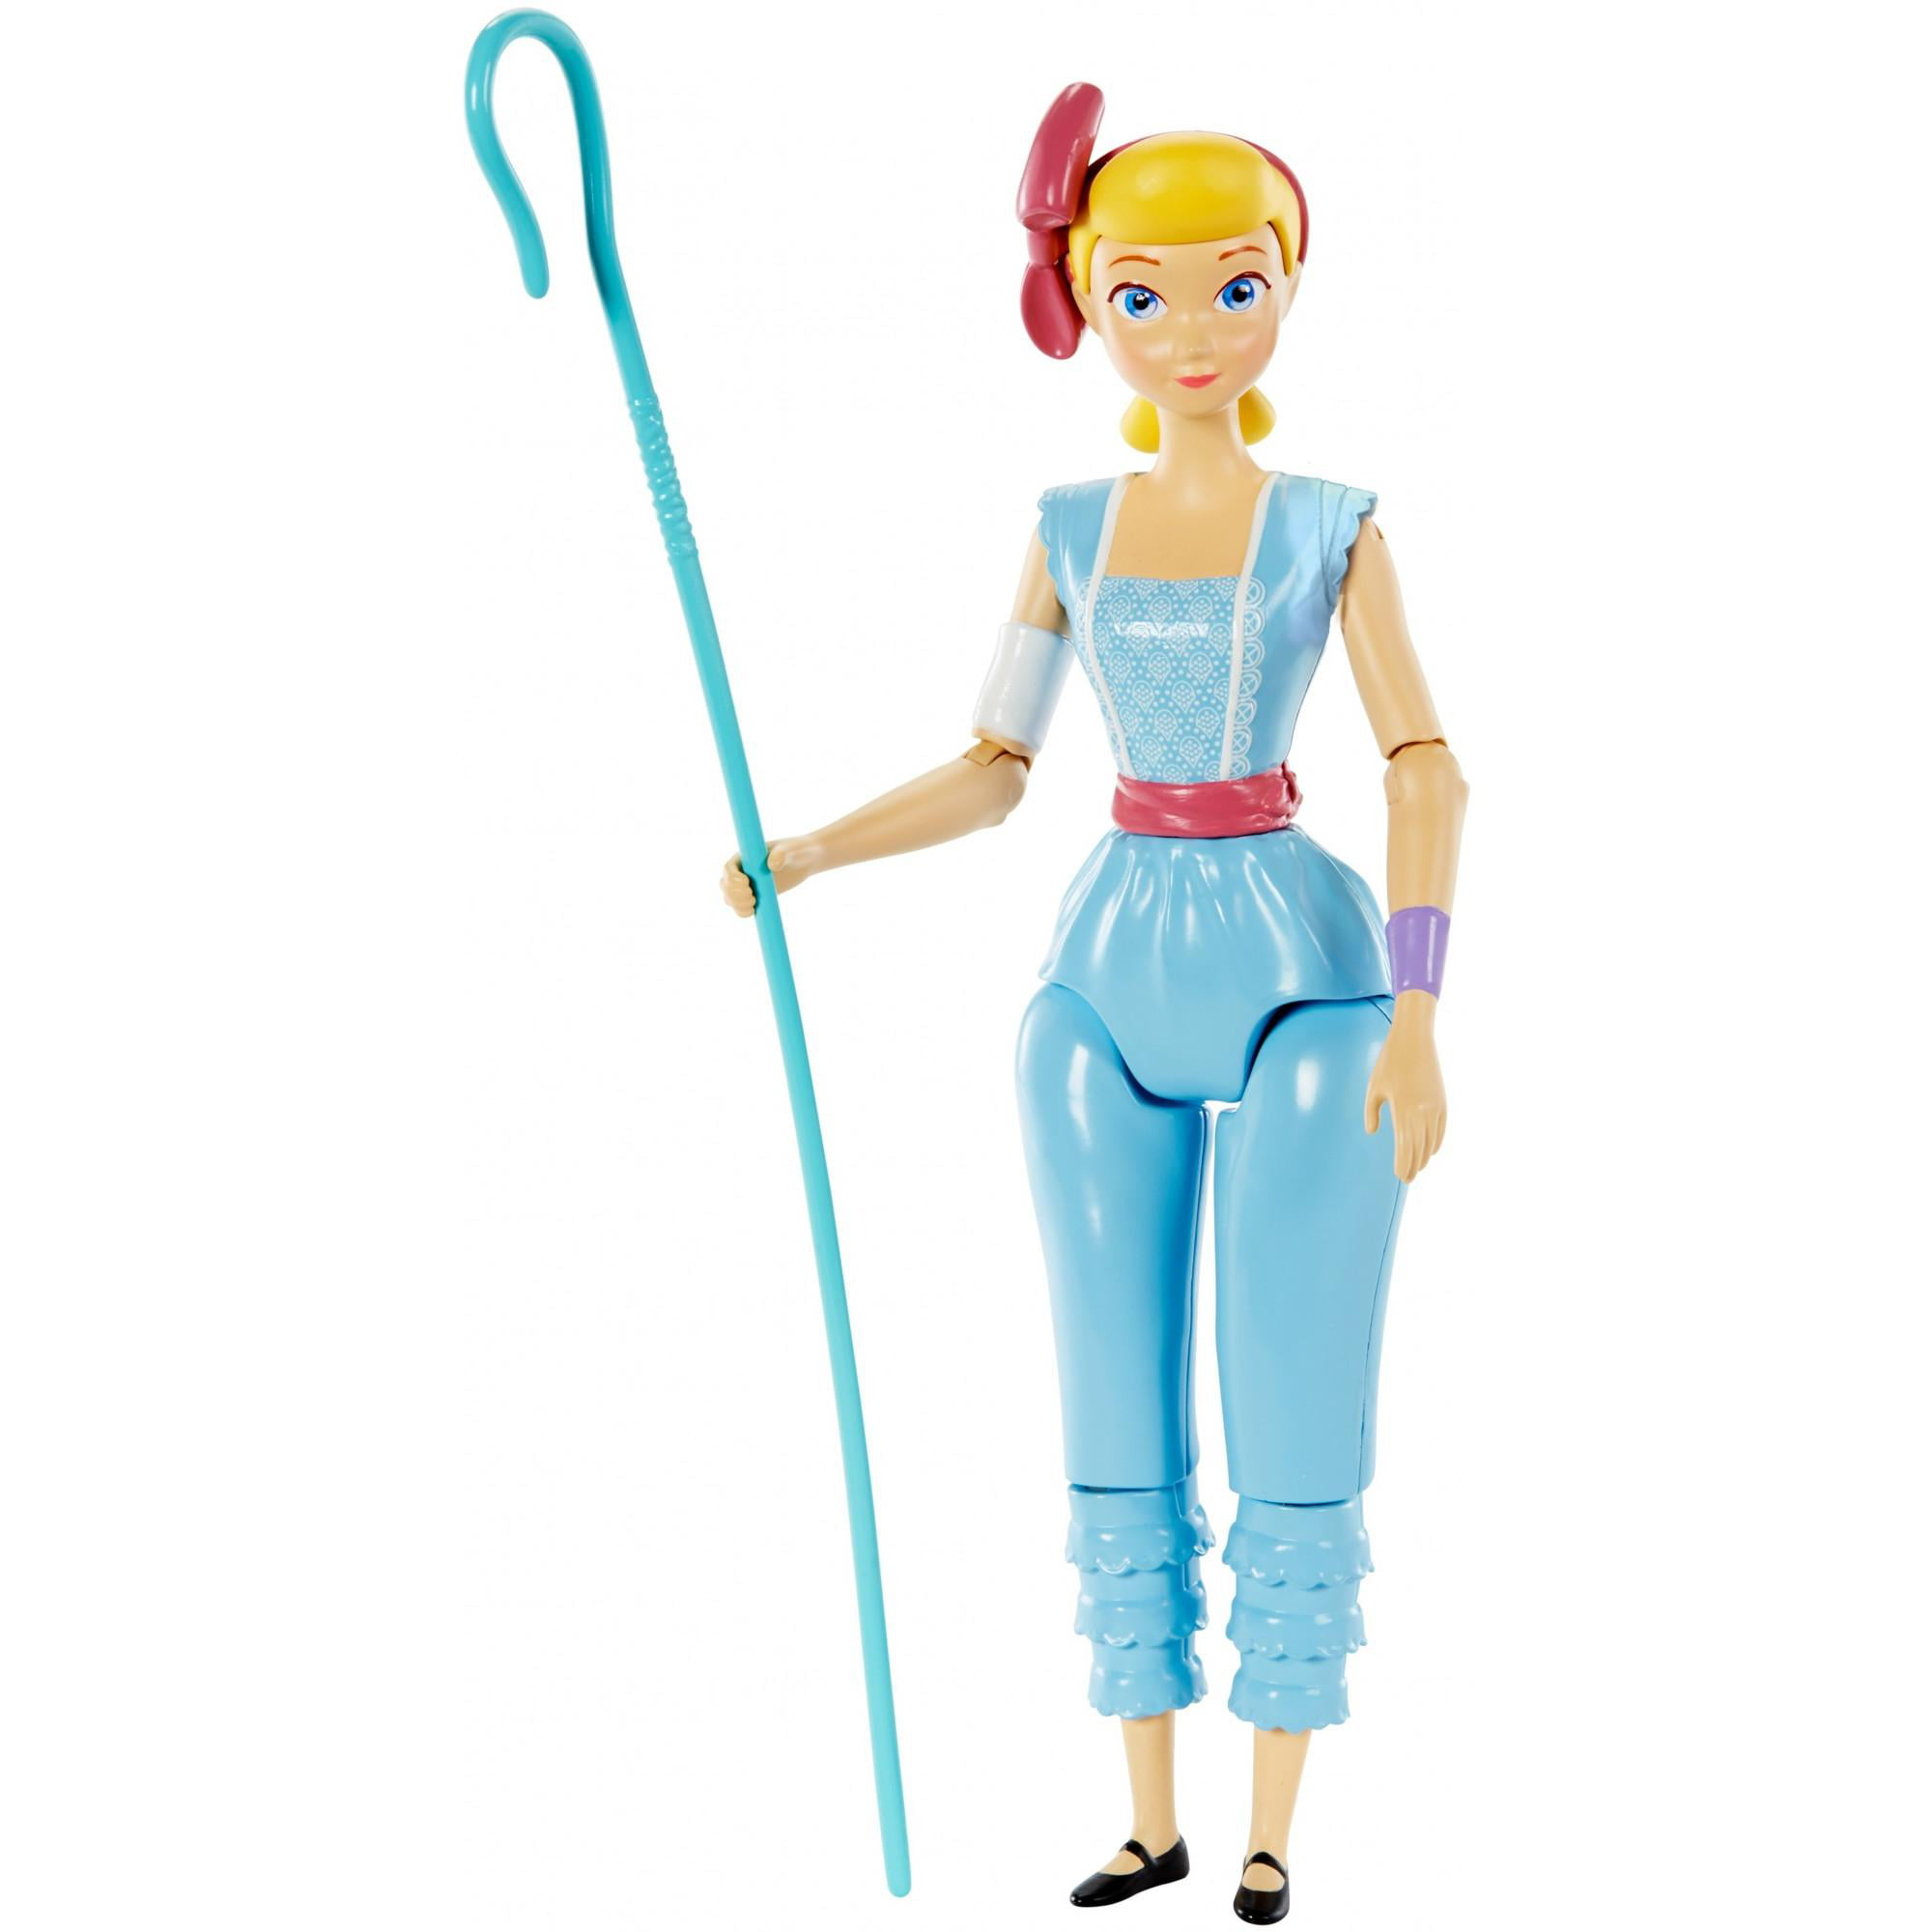 "NEW!! Toy Story 4 Disney Store Bo Peep Talking Action Figure 12"" PRE-ORDER"